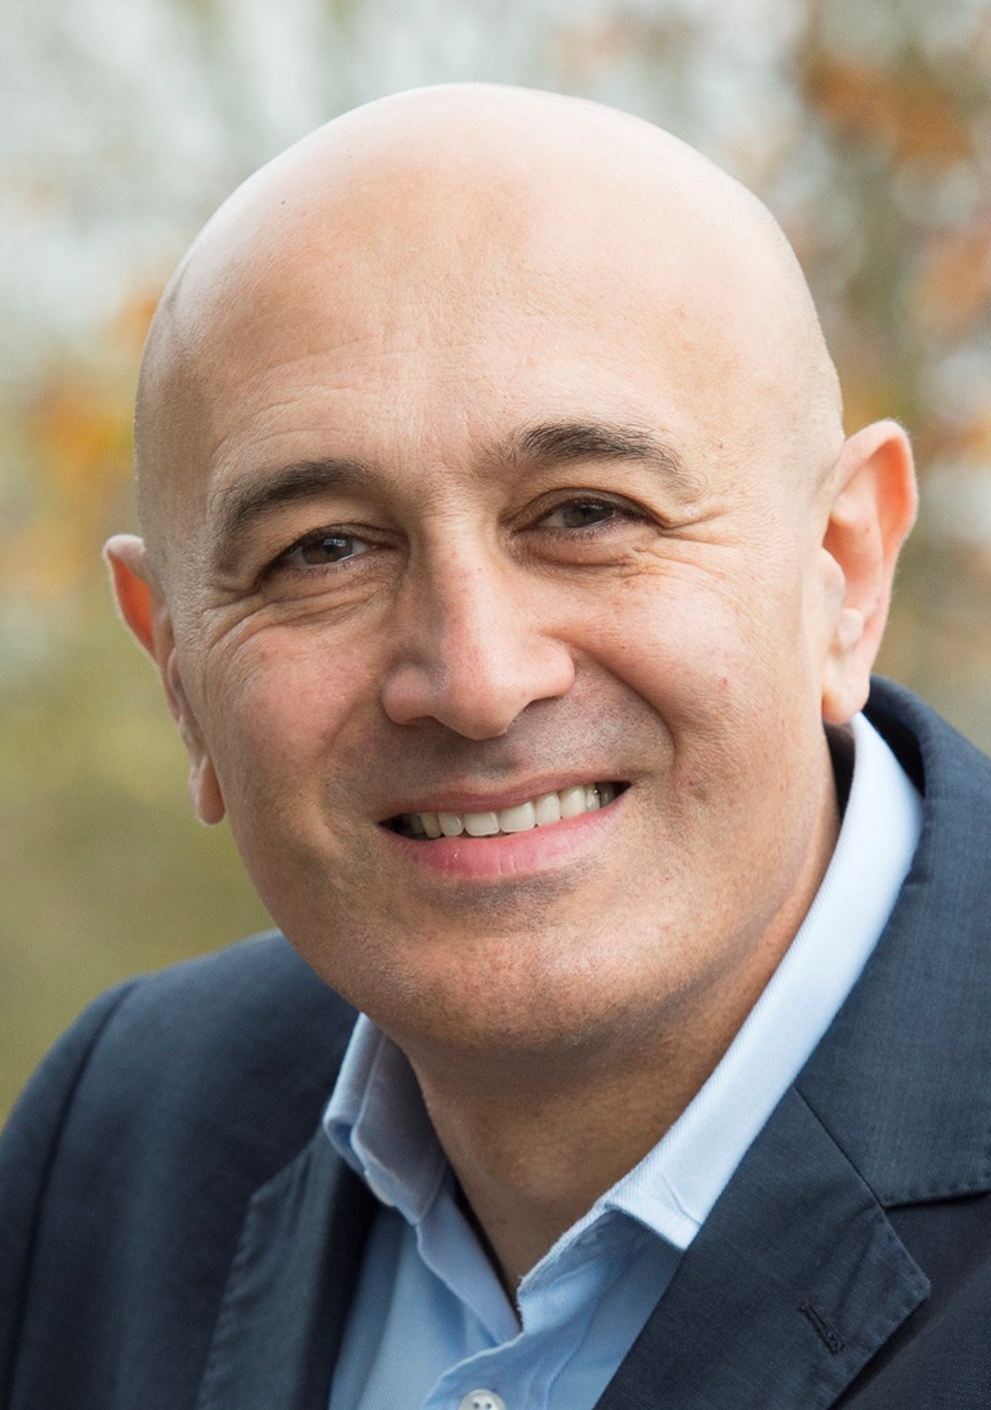 Professor Jim Al-Khalili OBE is Vice-President of Humanists UK. He is an Iraqi-born theoretical physicist, author and broadcaster. Jim has presented The Life Scientific on Radio 4. One of Dorset Humanists' aims is to promote the public understanding of science.